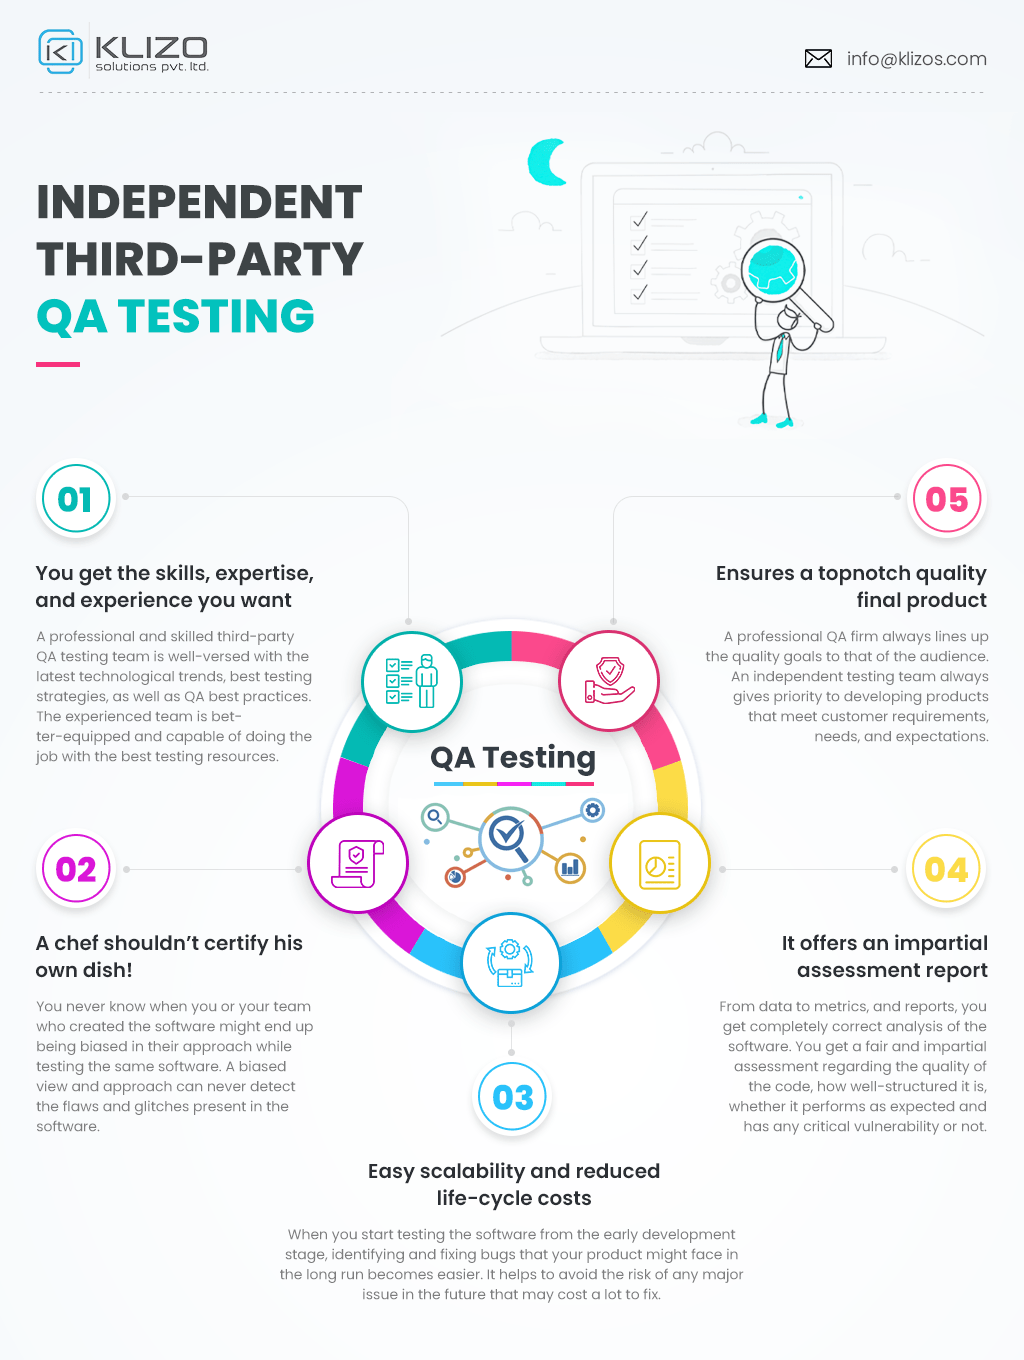 independent third-party QA testing benefits INFOGRAPHIC